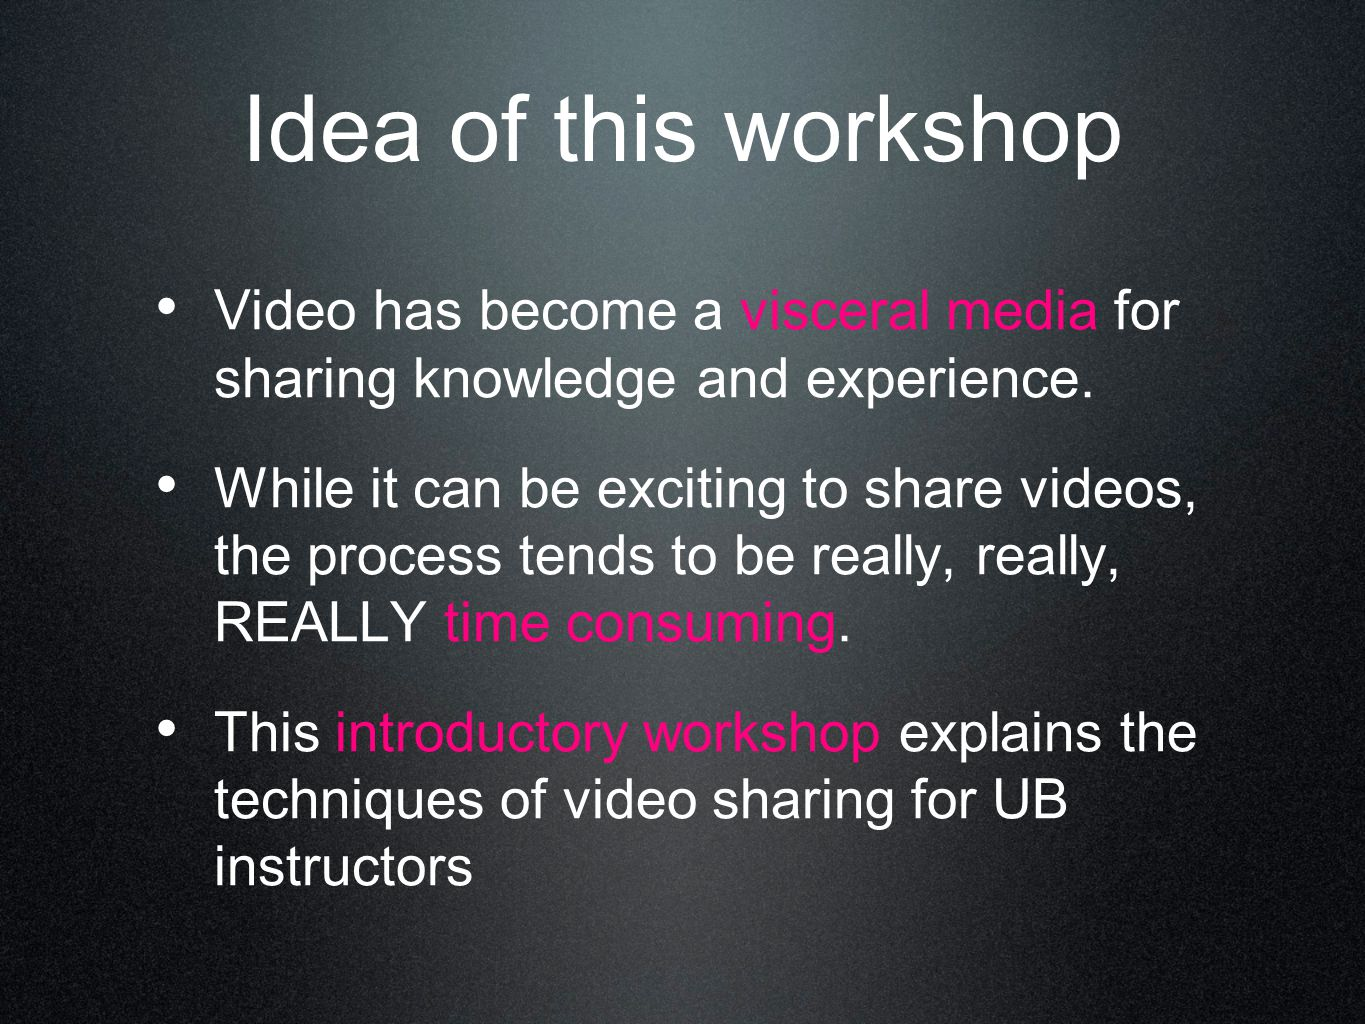 Idea of this workshop Video has become a visceral media for sharing knowledge and experience.